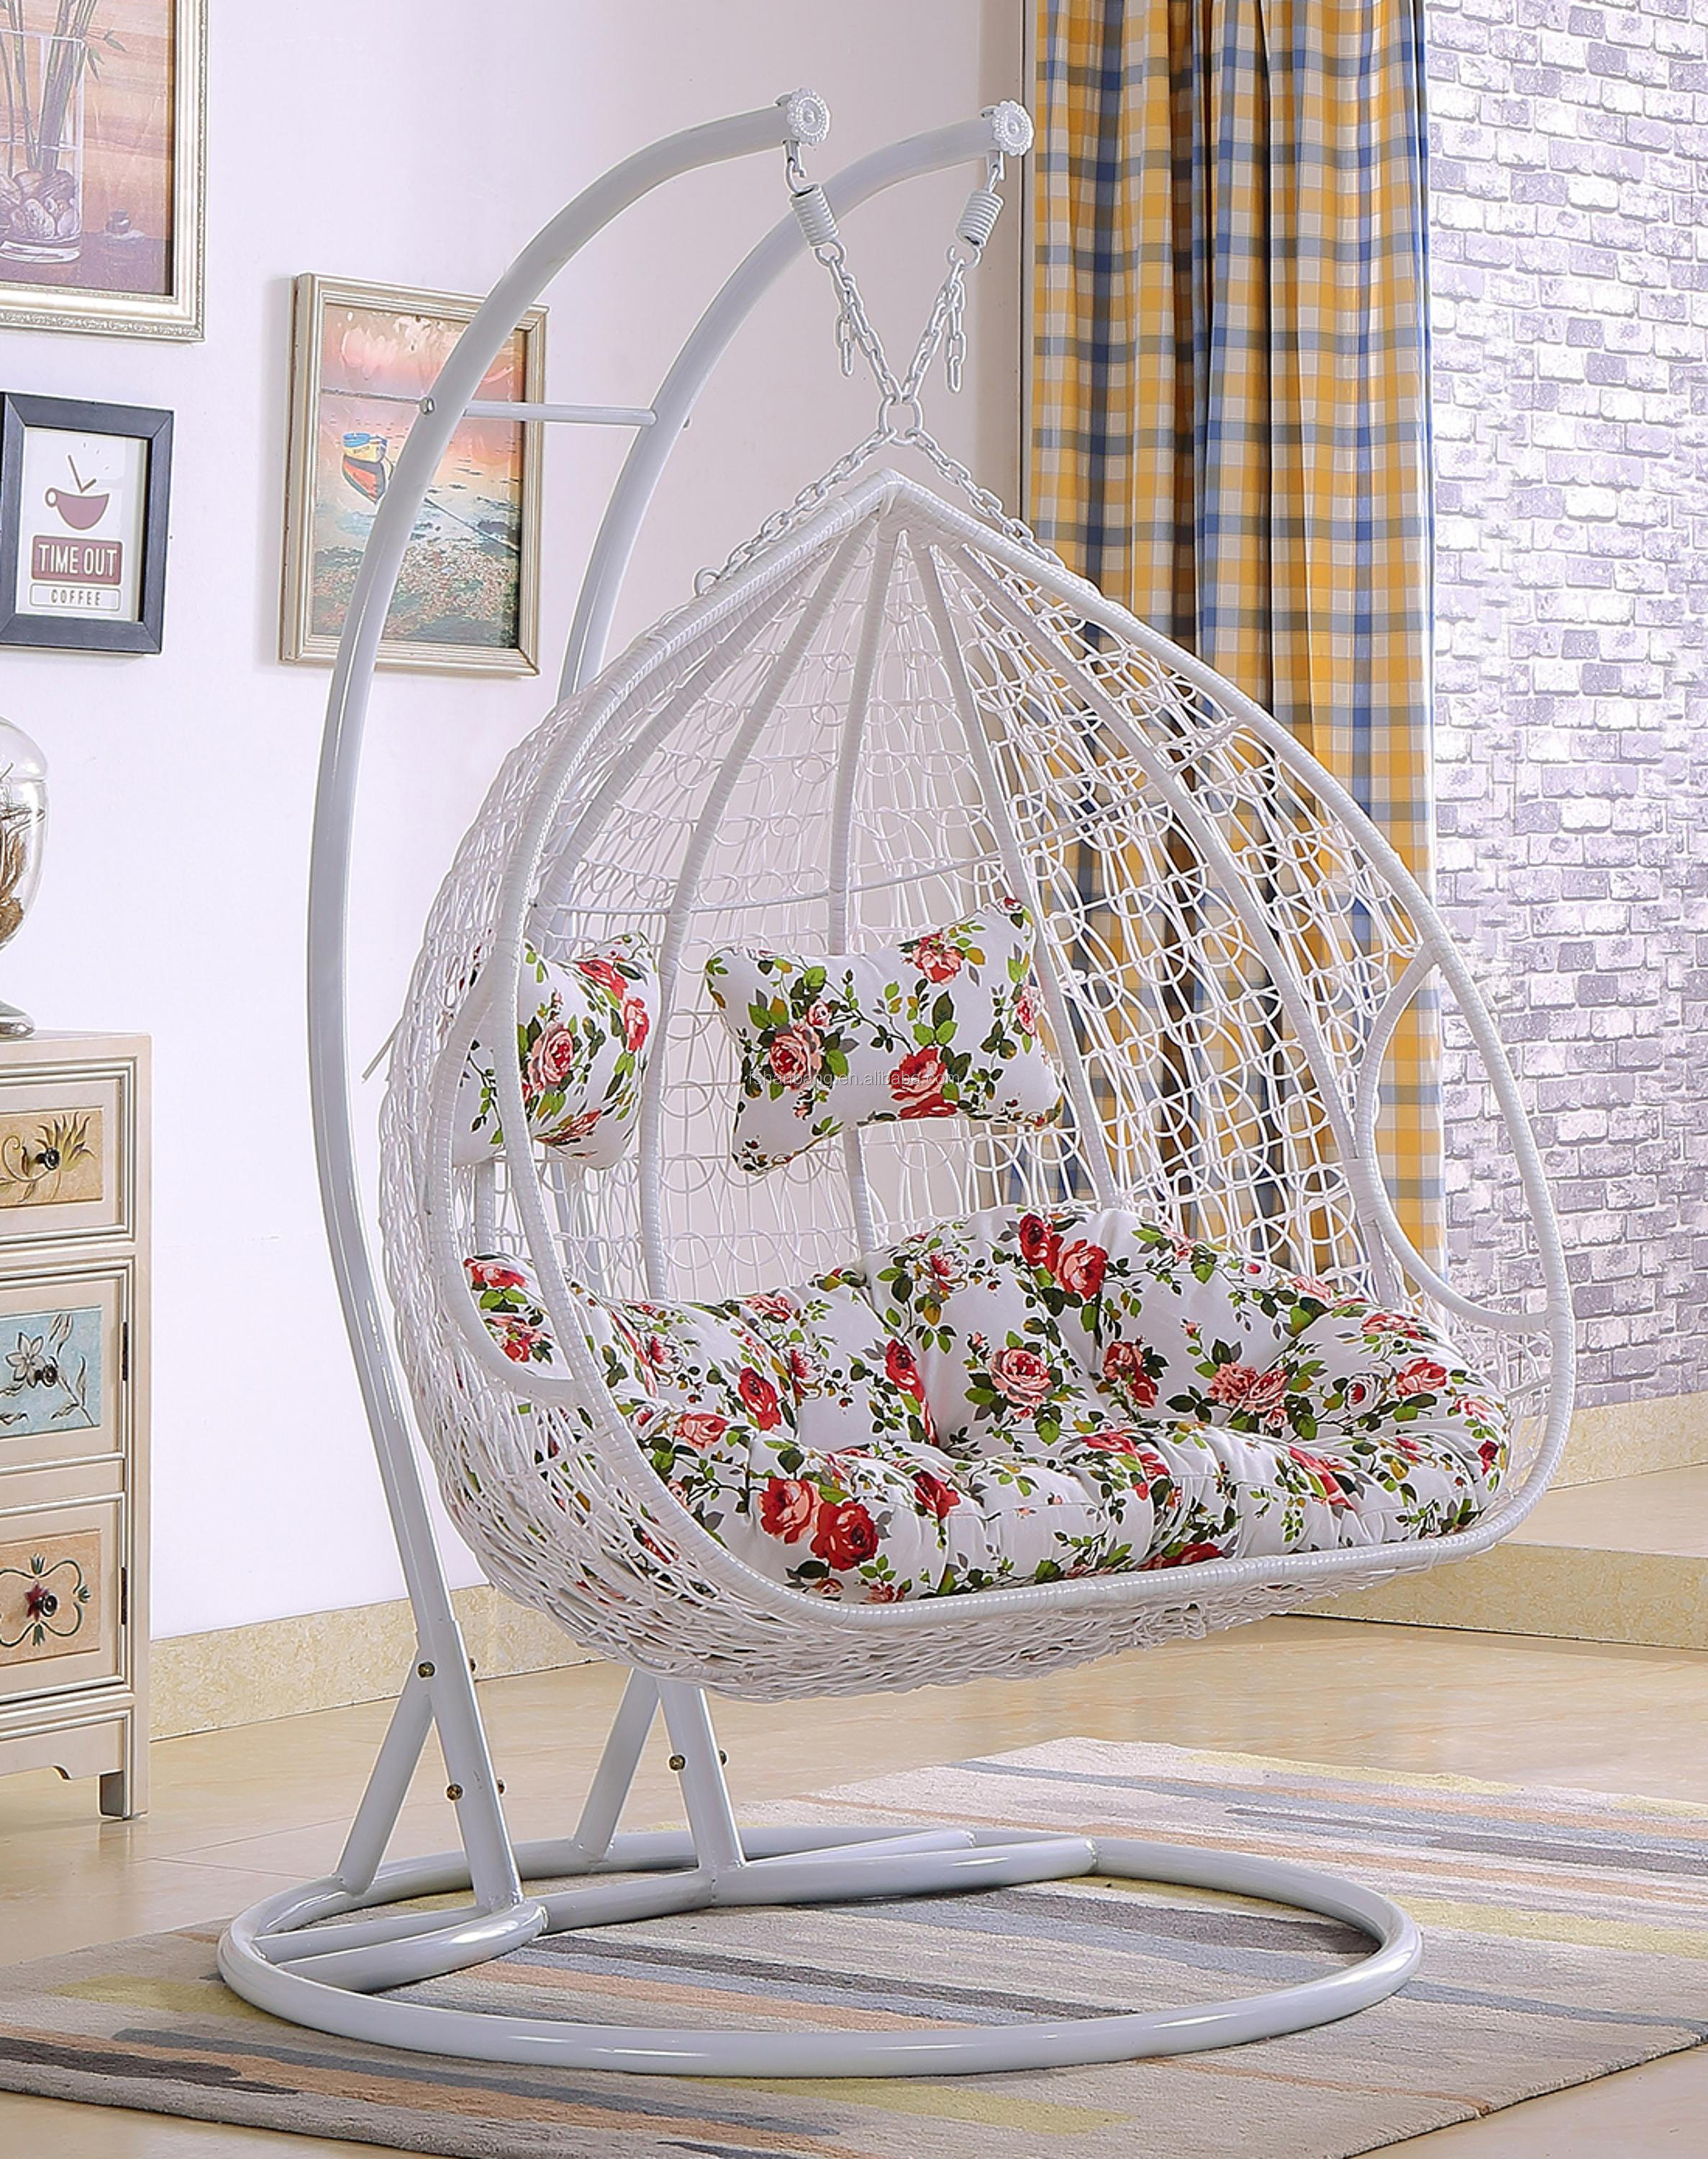 Hanging Chair Outdoor Luxury Outdoor 2 Person Garden Patio Swing Hanging Chair Buy Hanging Chair 2 Person Swing Chair Outdoor Double Swing Chair Product On Alibaba